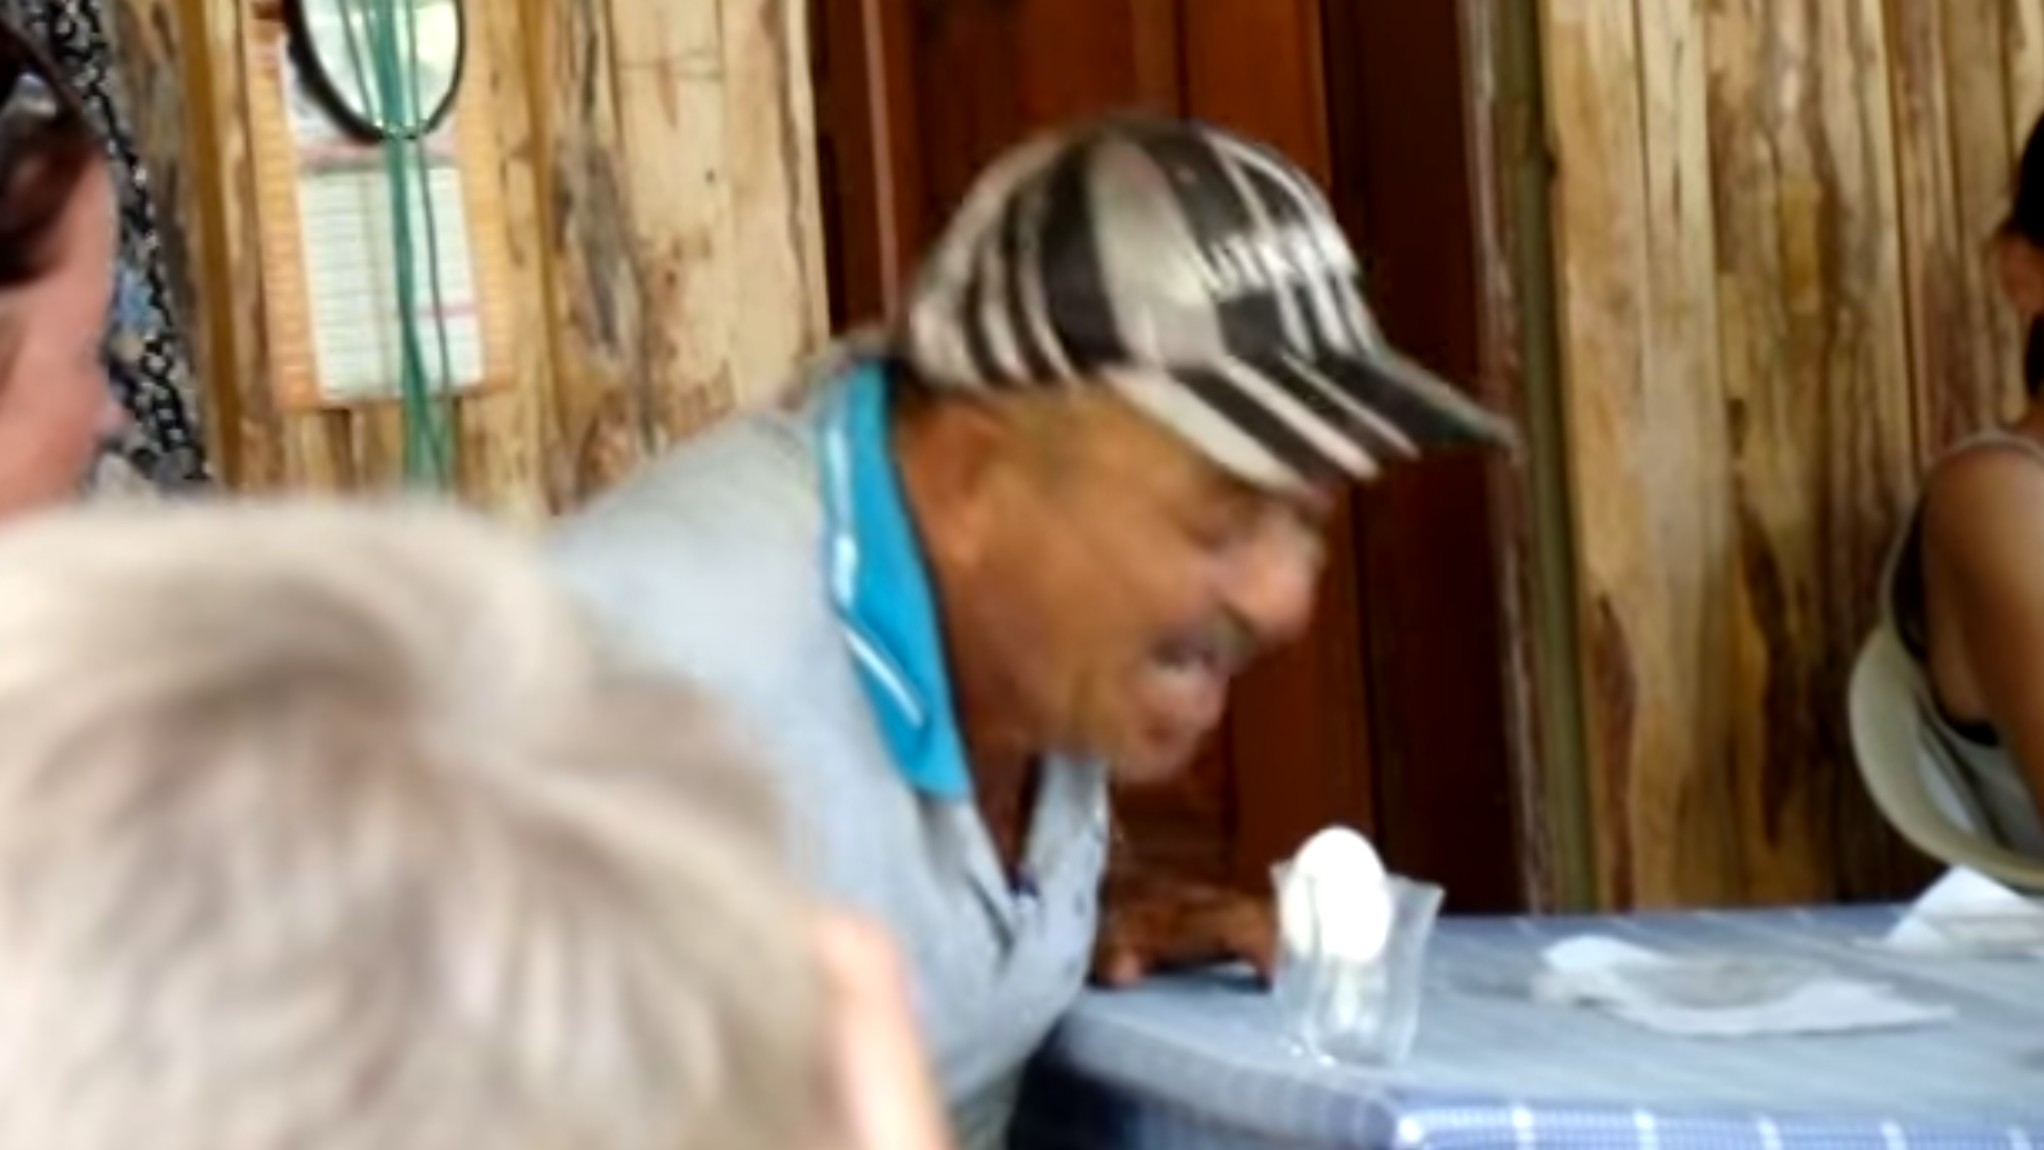 'Turkish Man Yelling 'Meow' at an Egg' Is the Best YouTube Video